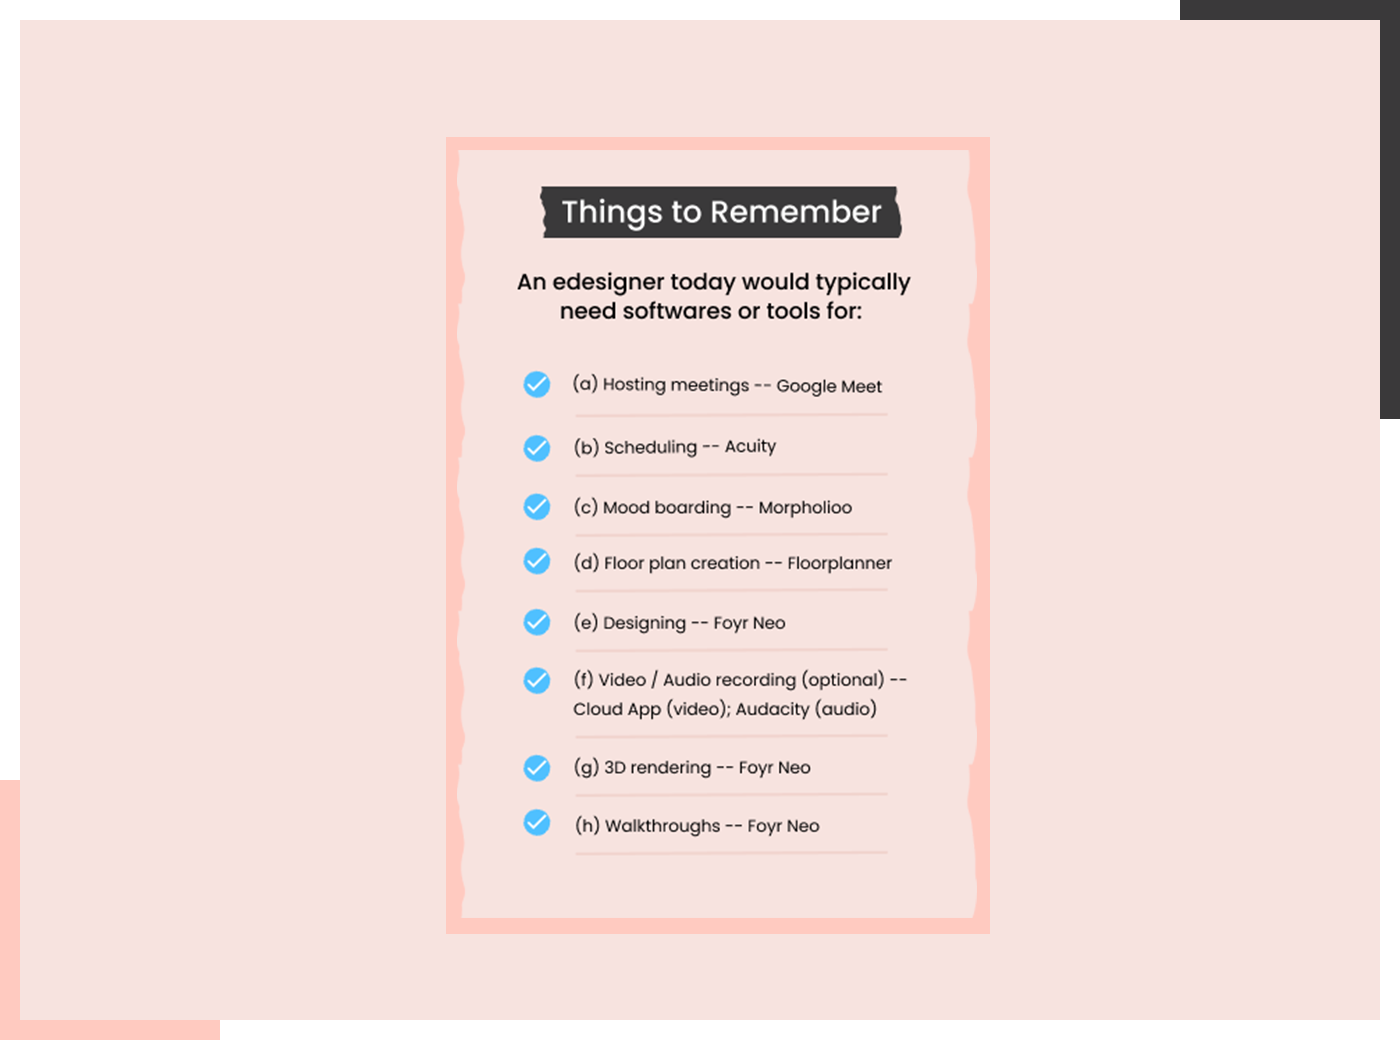 Things to remember for E-design